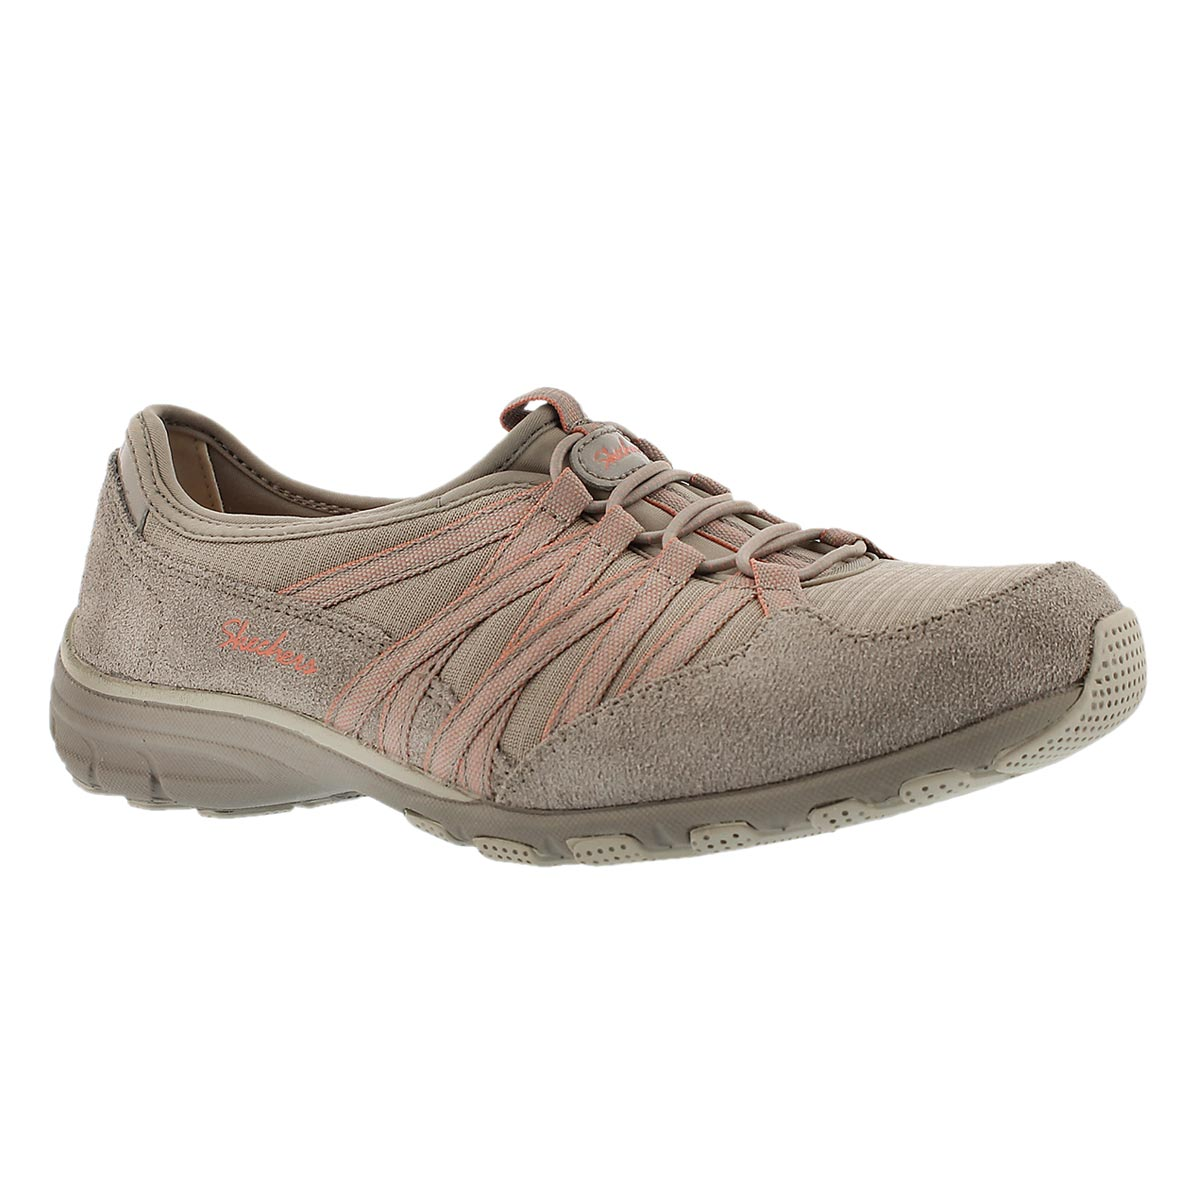 Women's HOLDING ACES taupe/crl slip on sneakers